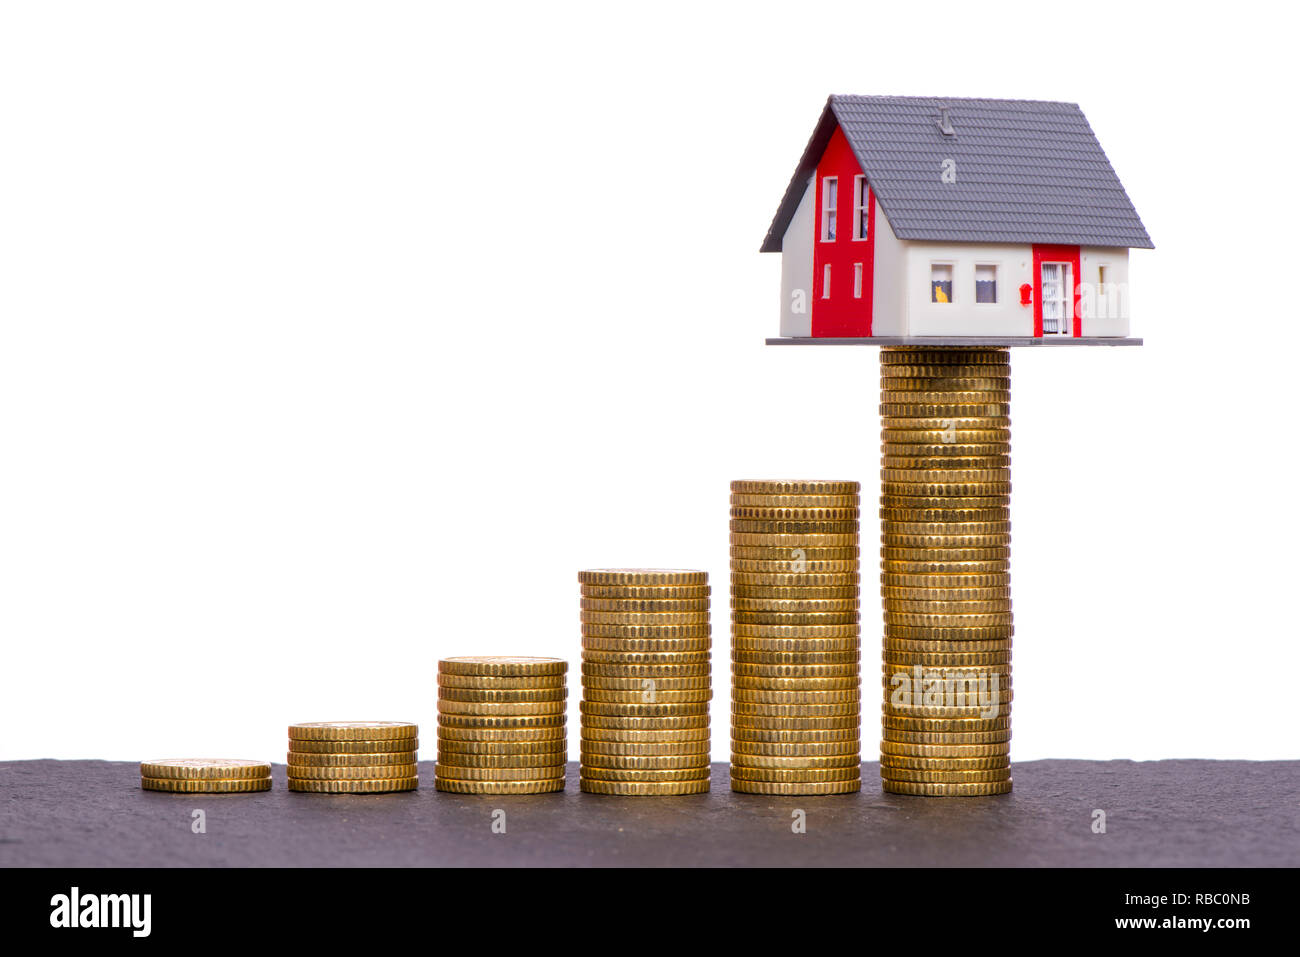 chart of Euro coins with model home on top - Stock Image